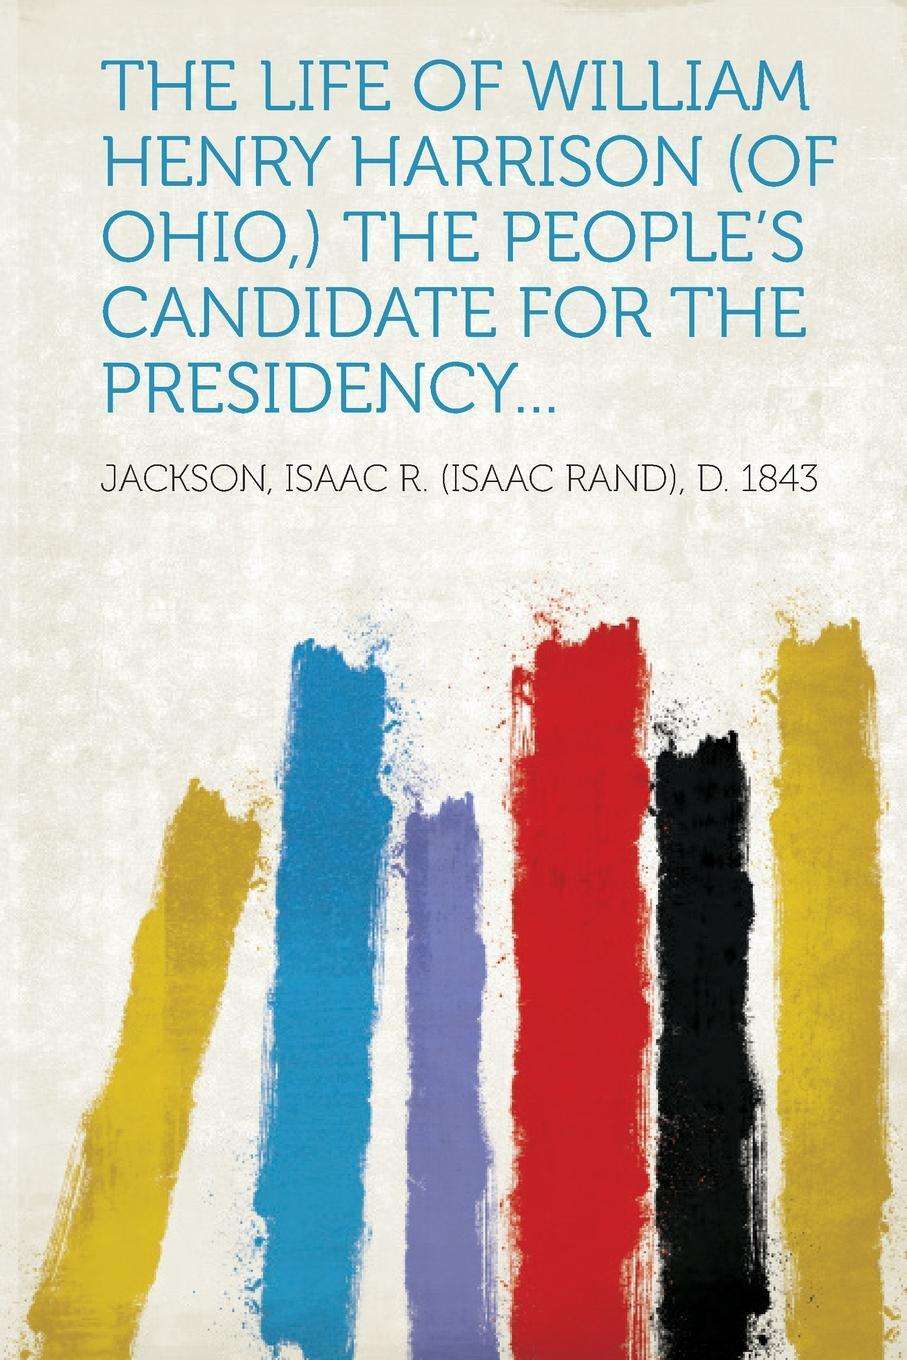 The Life of William Henry Harrison (of Ohio, ) the People's Candidate for the Presidency...